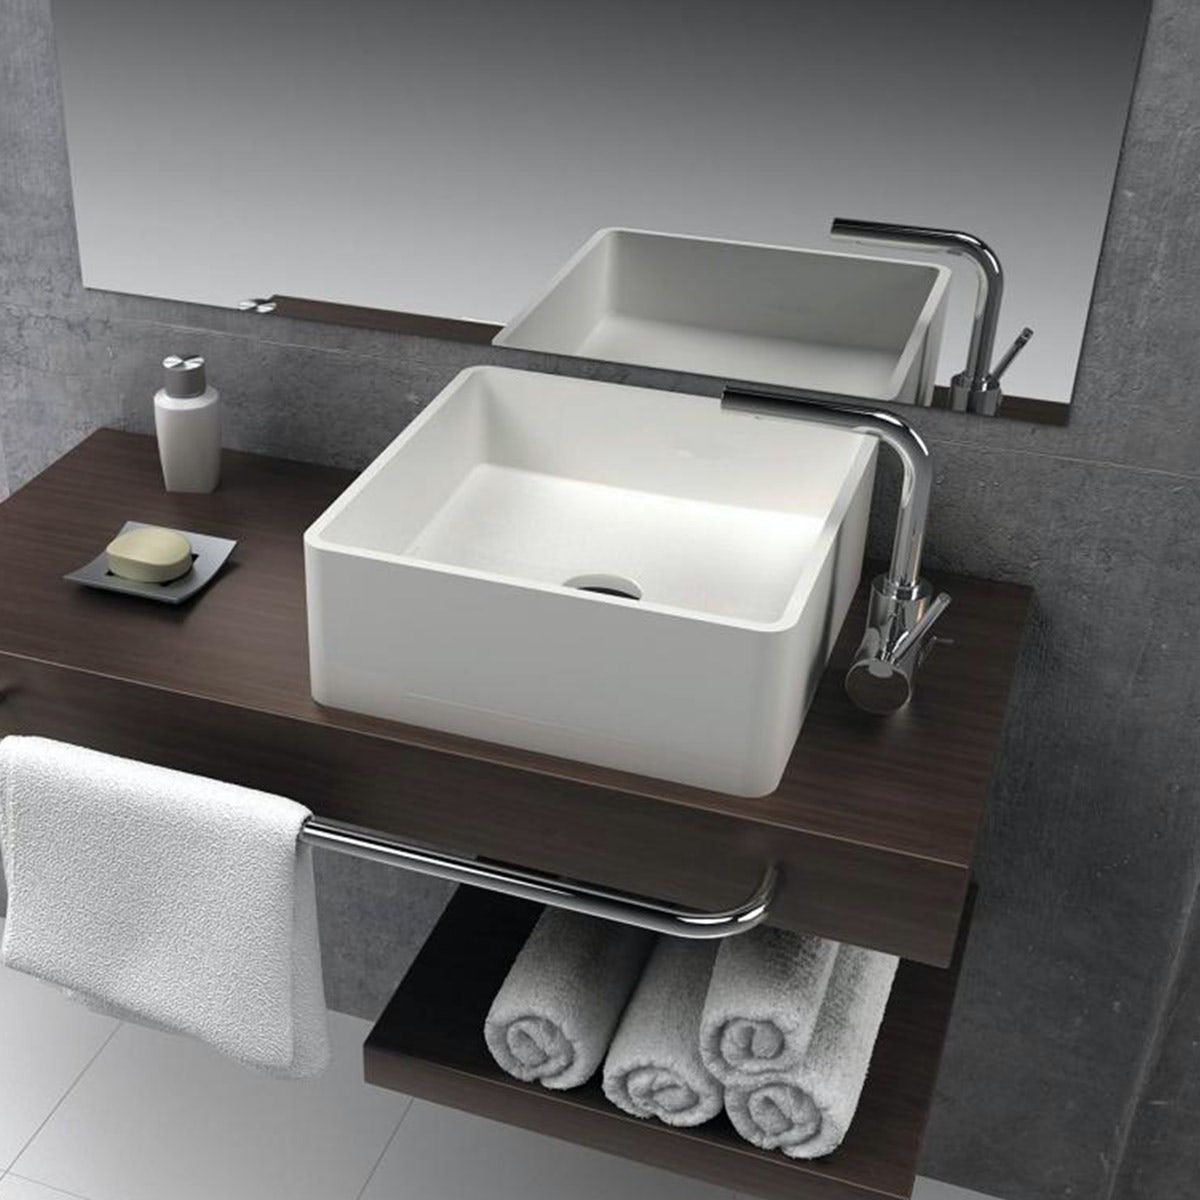 Mode Carpi solid surface stone resin square countertop basin 400mm with waste